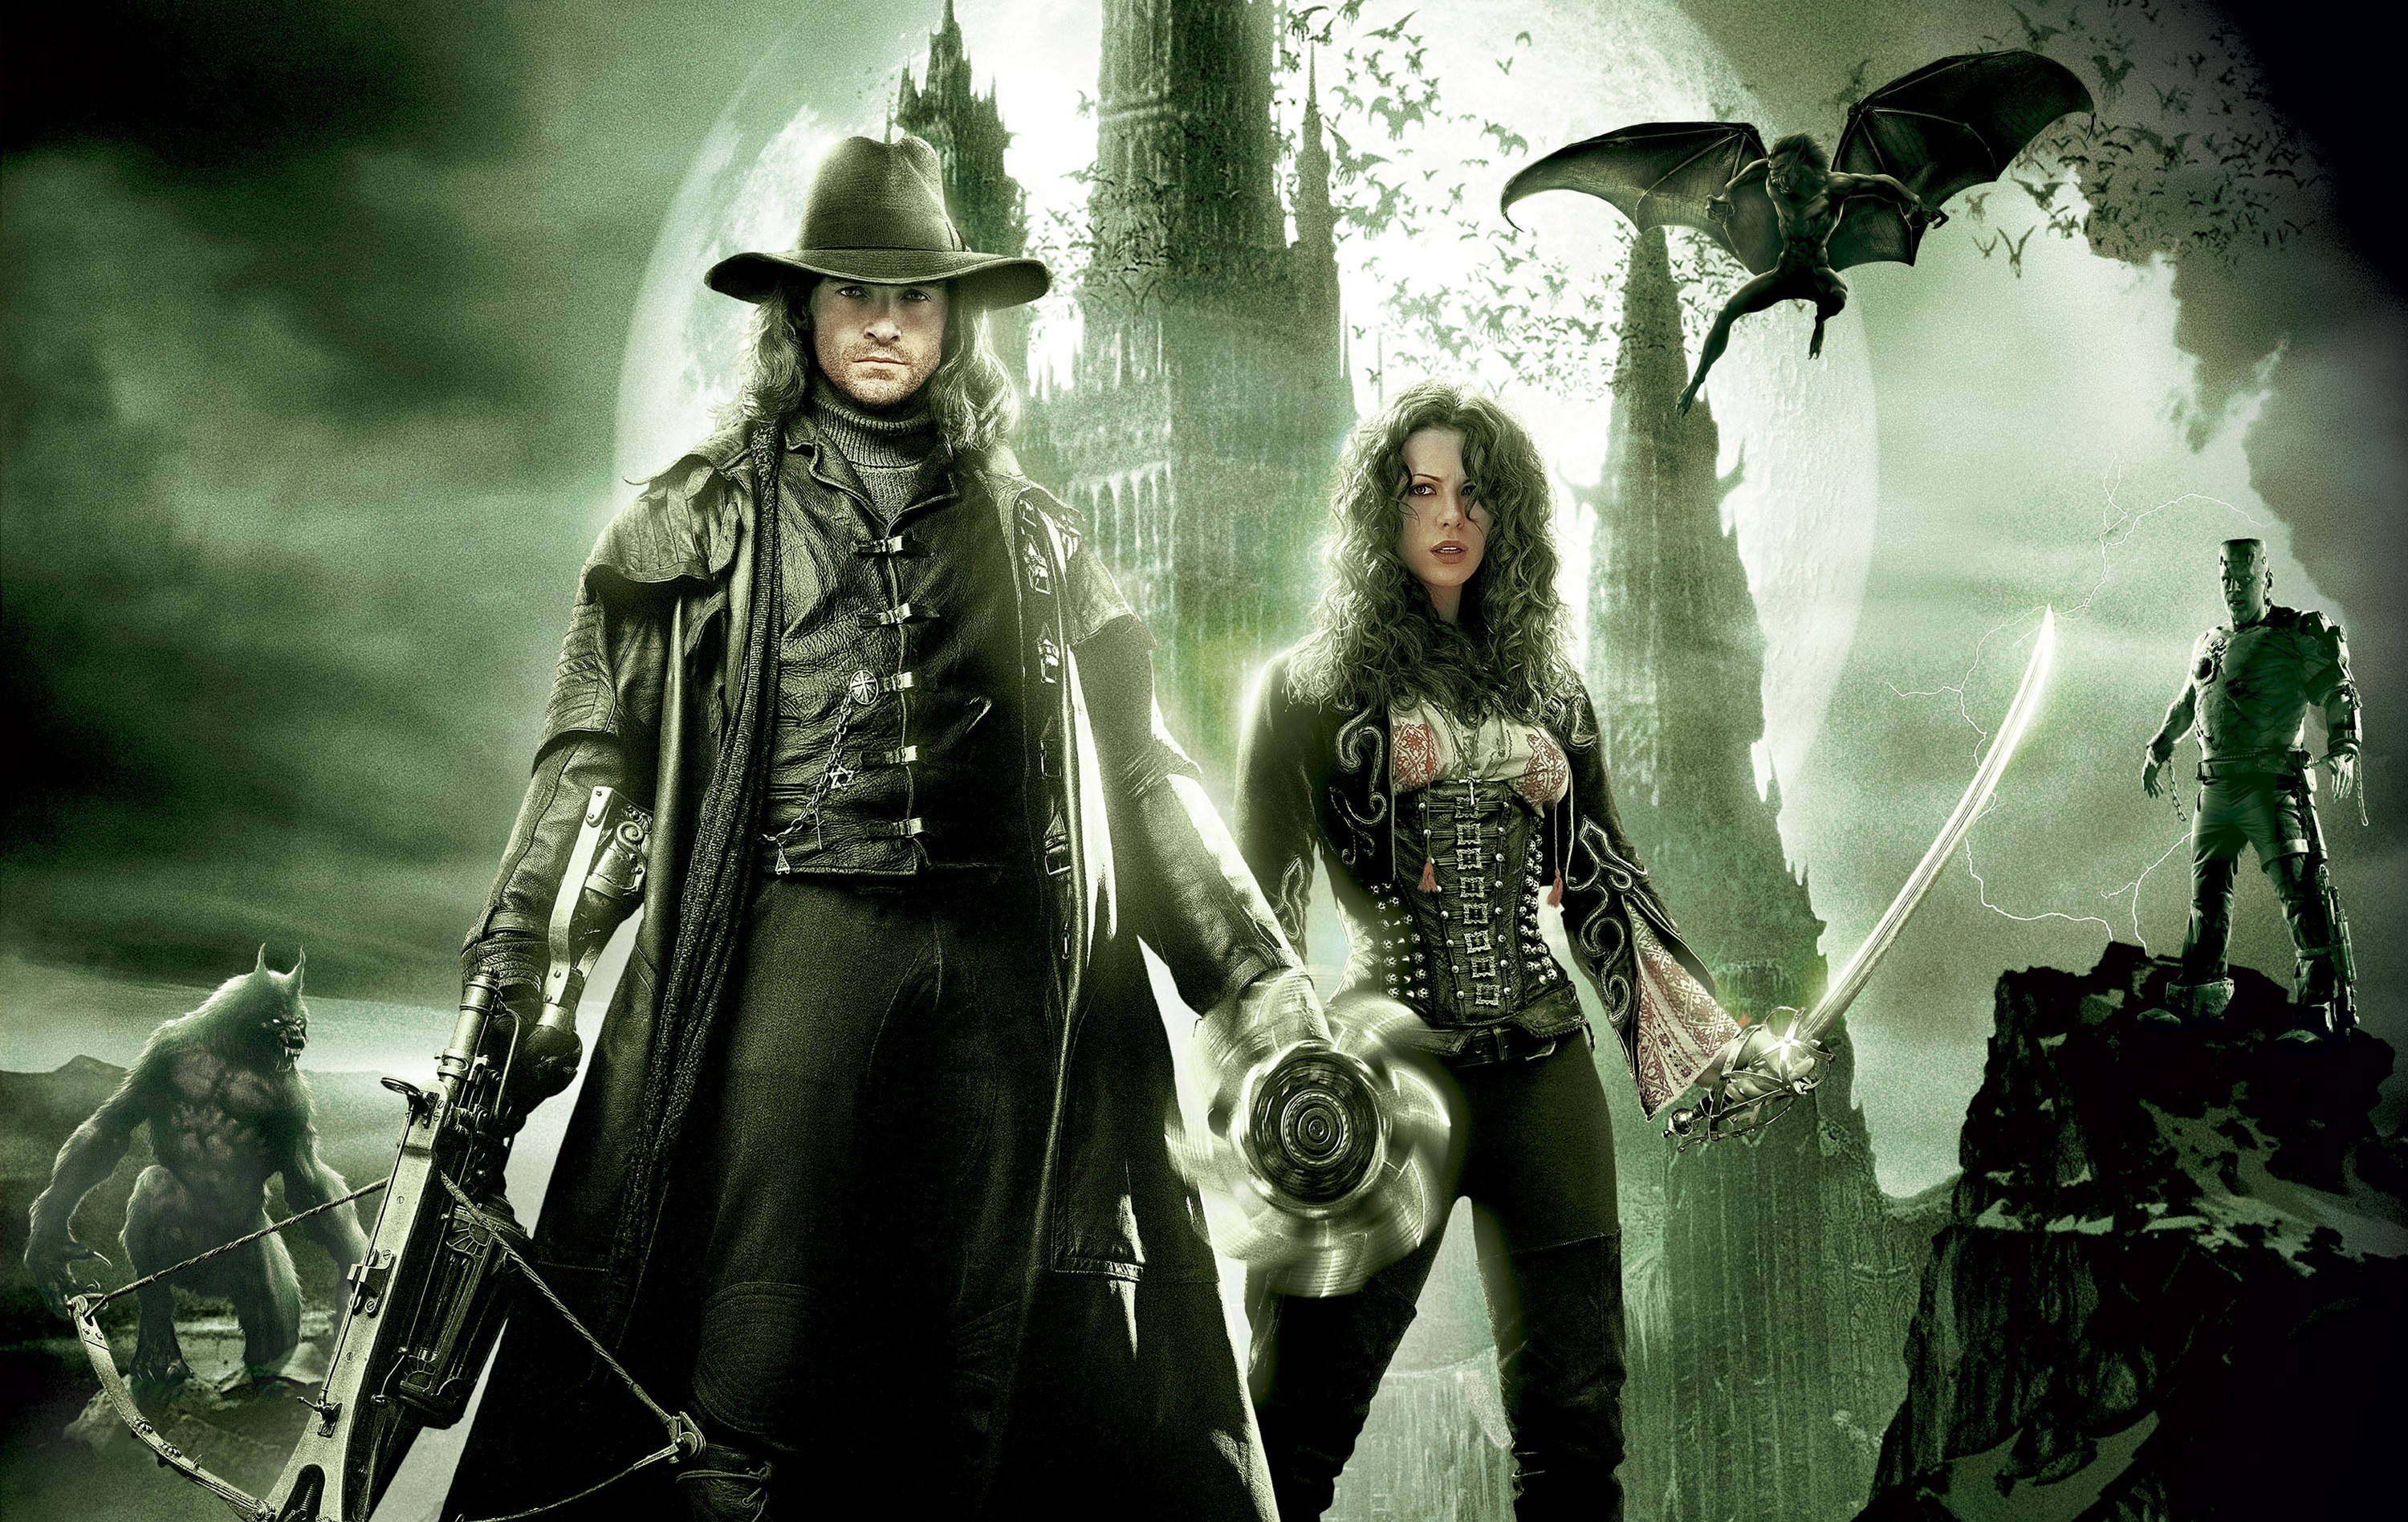 Un wallpaper di Van Helsing con Hugh Jackman e Kate Beckinsale